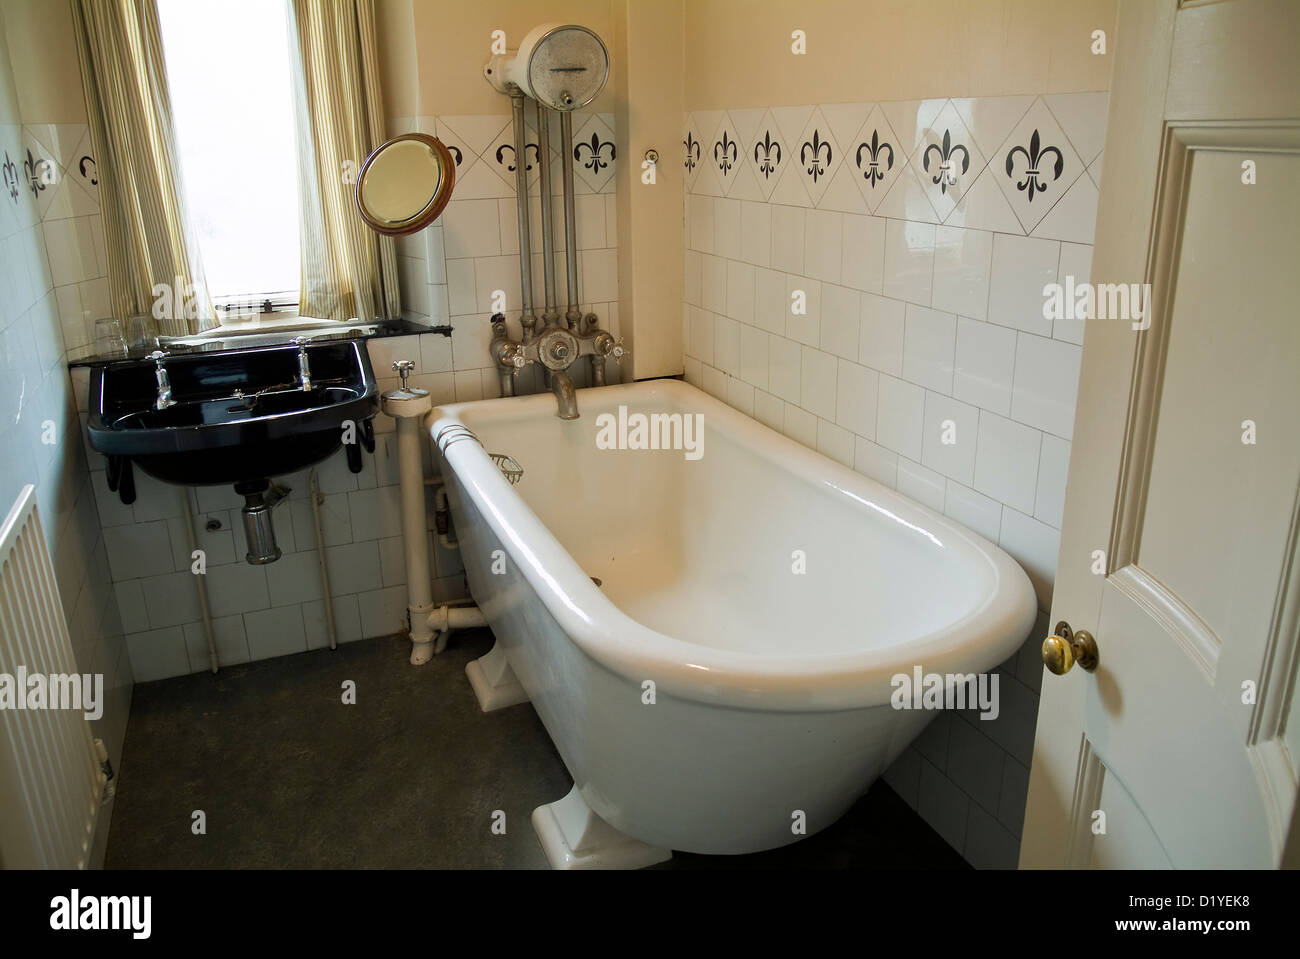 Old Fashioned Bathroom Stock Photos & Old Fashioned Bathroom Stock ...